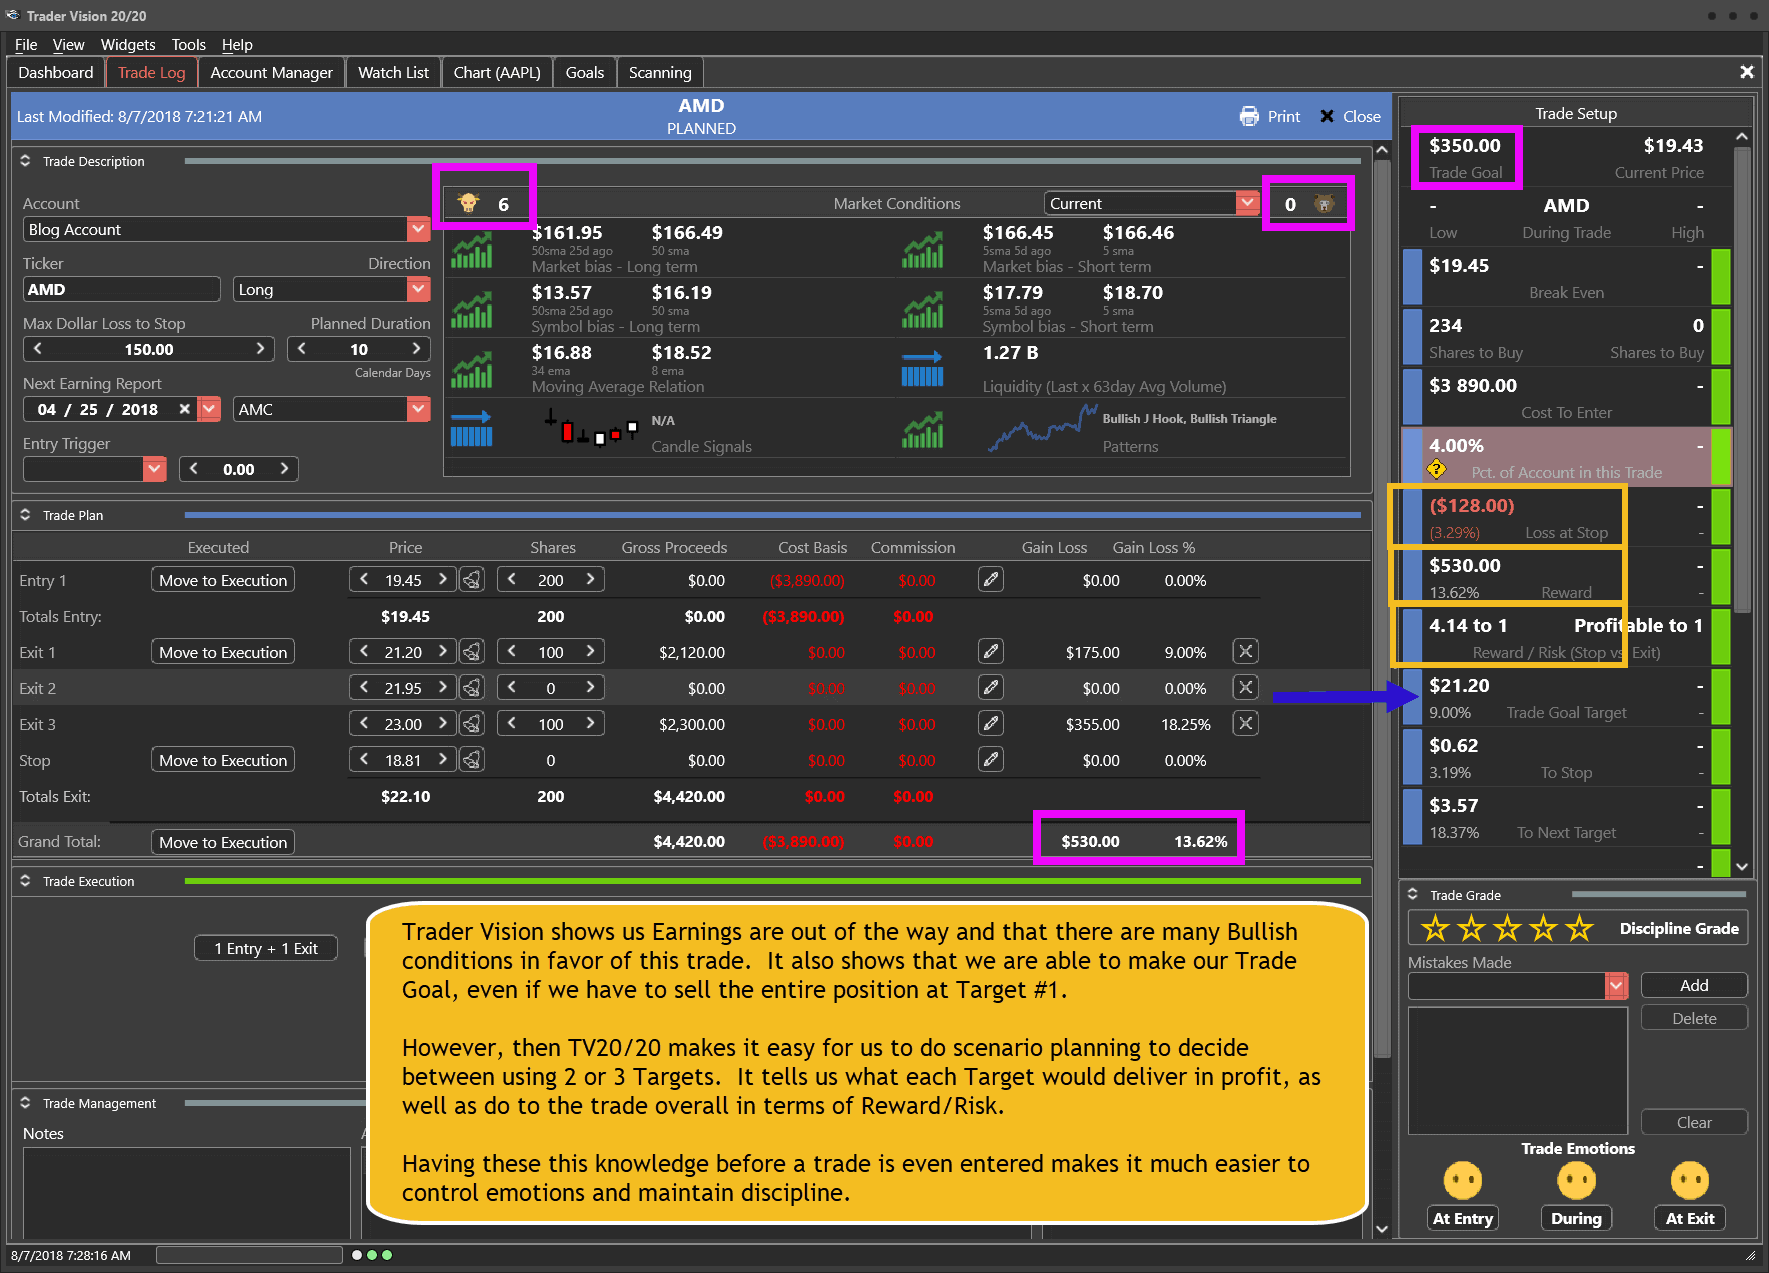 AMD Trade Plan for 8-7-18